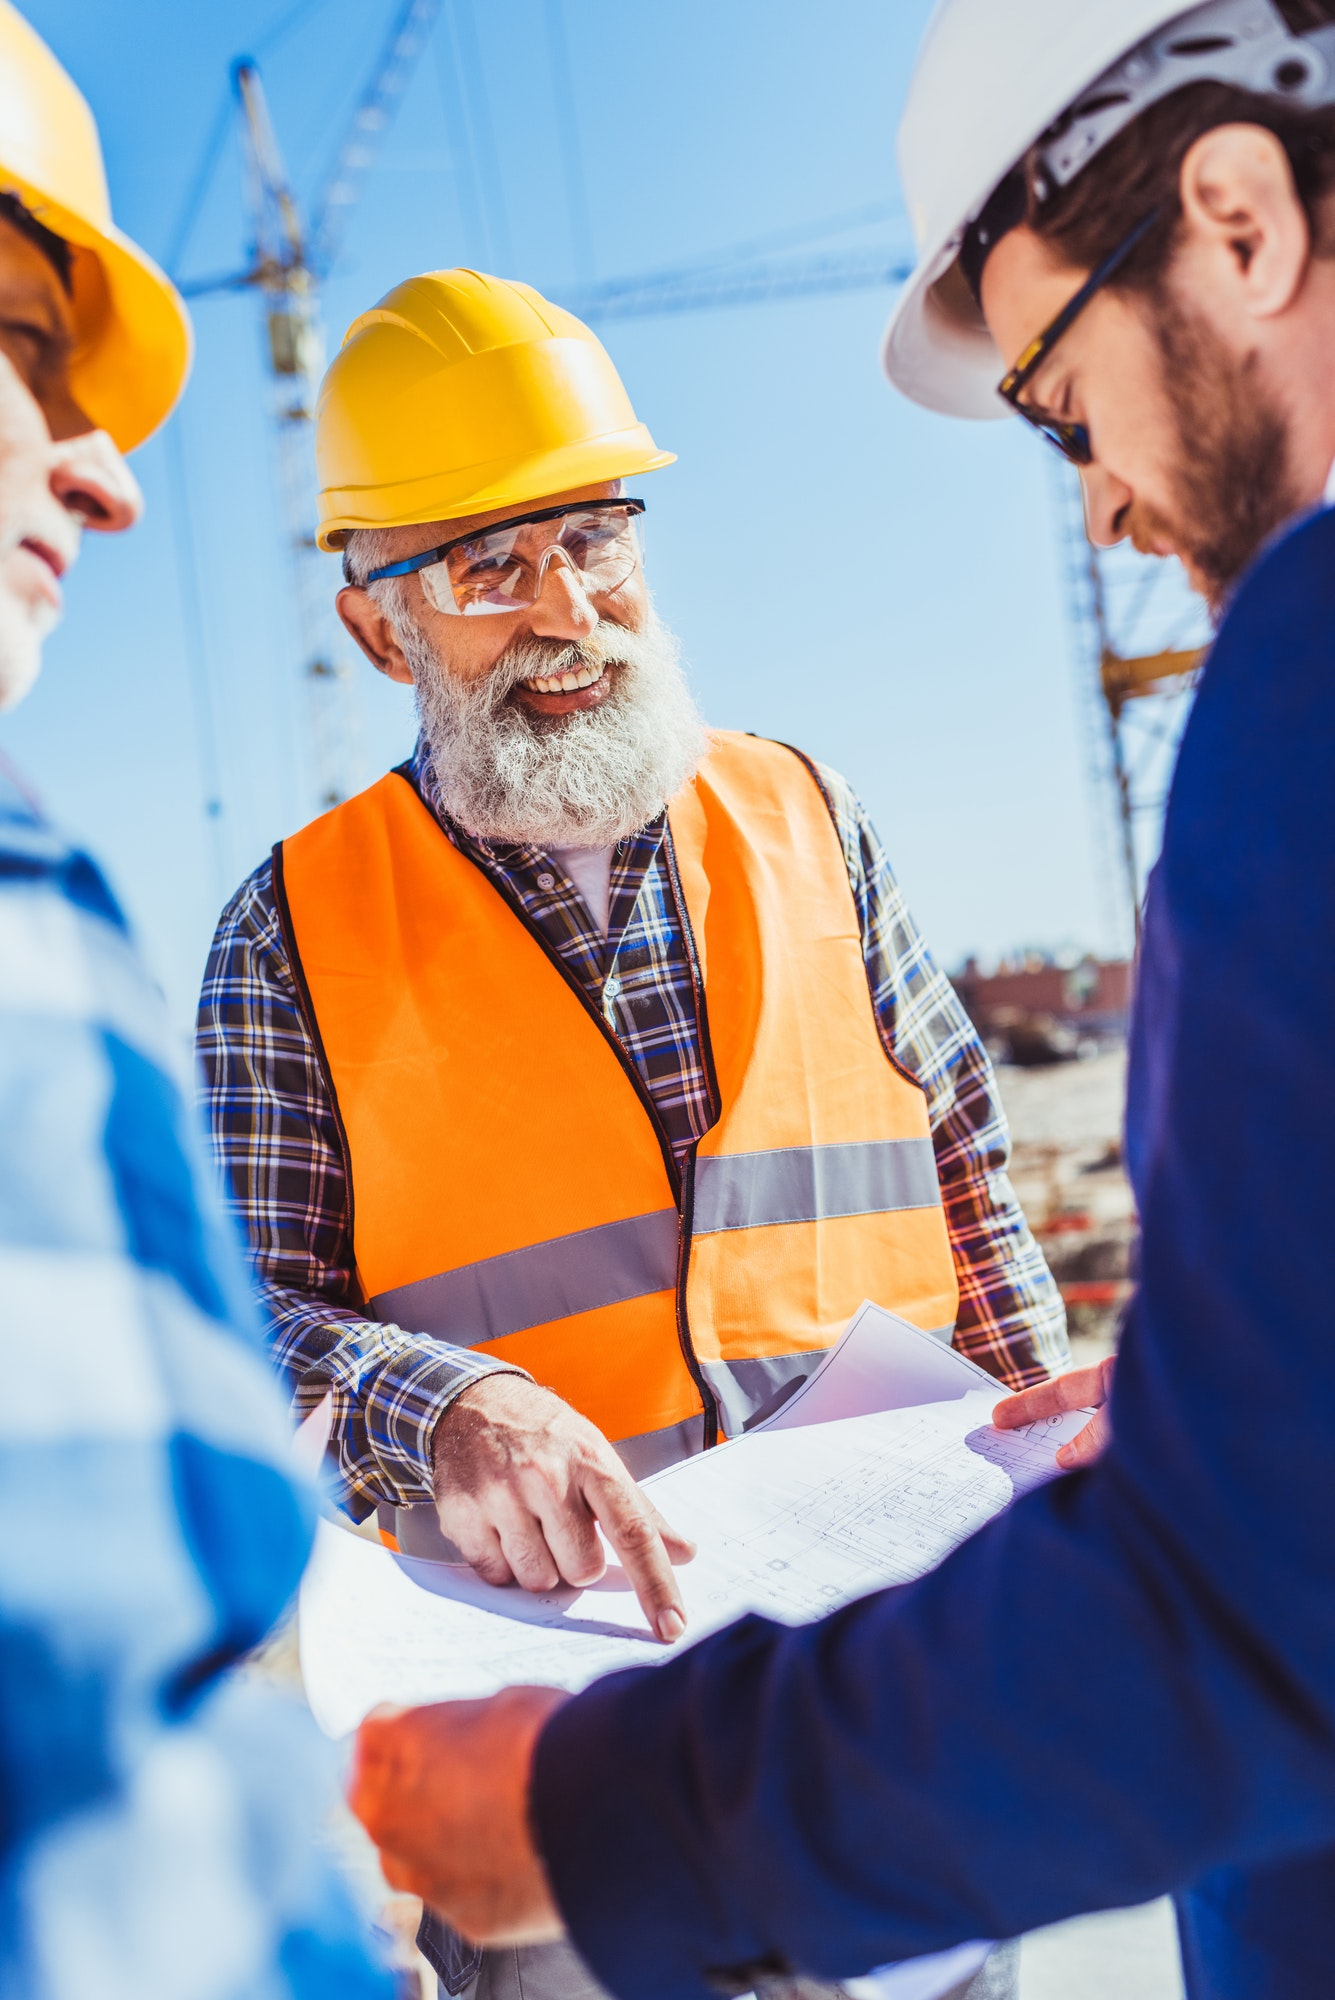 Construction worker in protective uniform discussing building plans with businessman in hardhat and